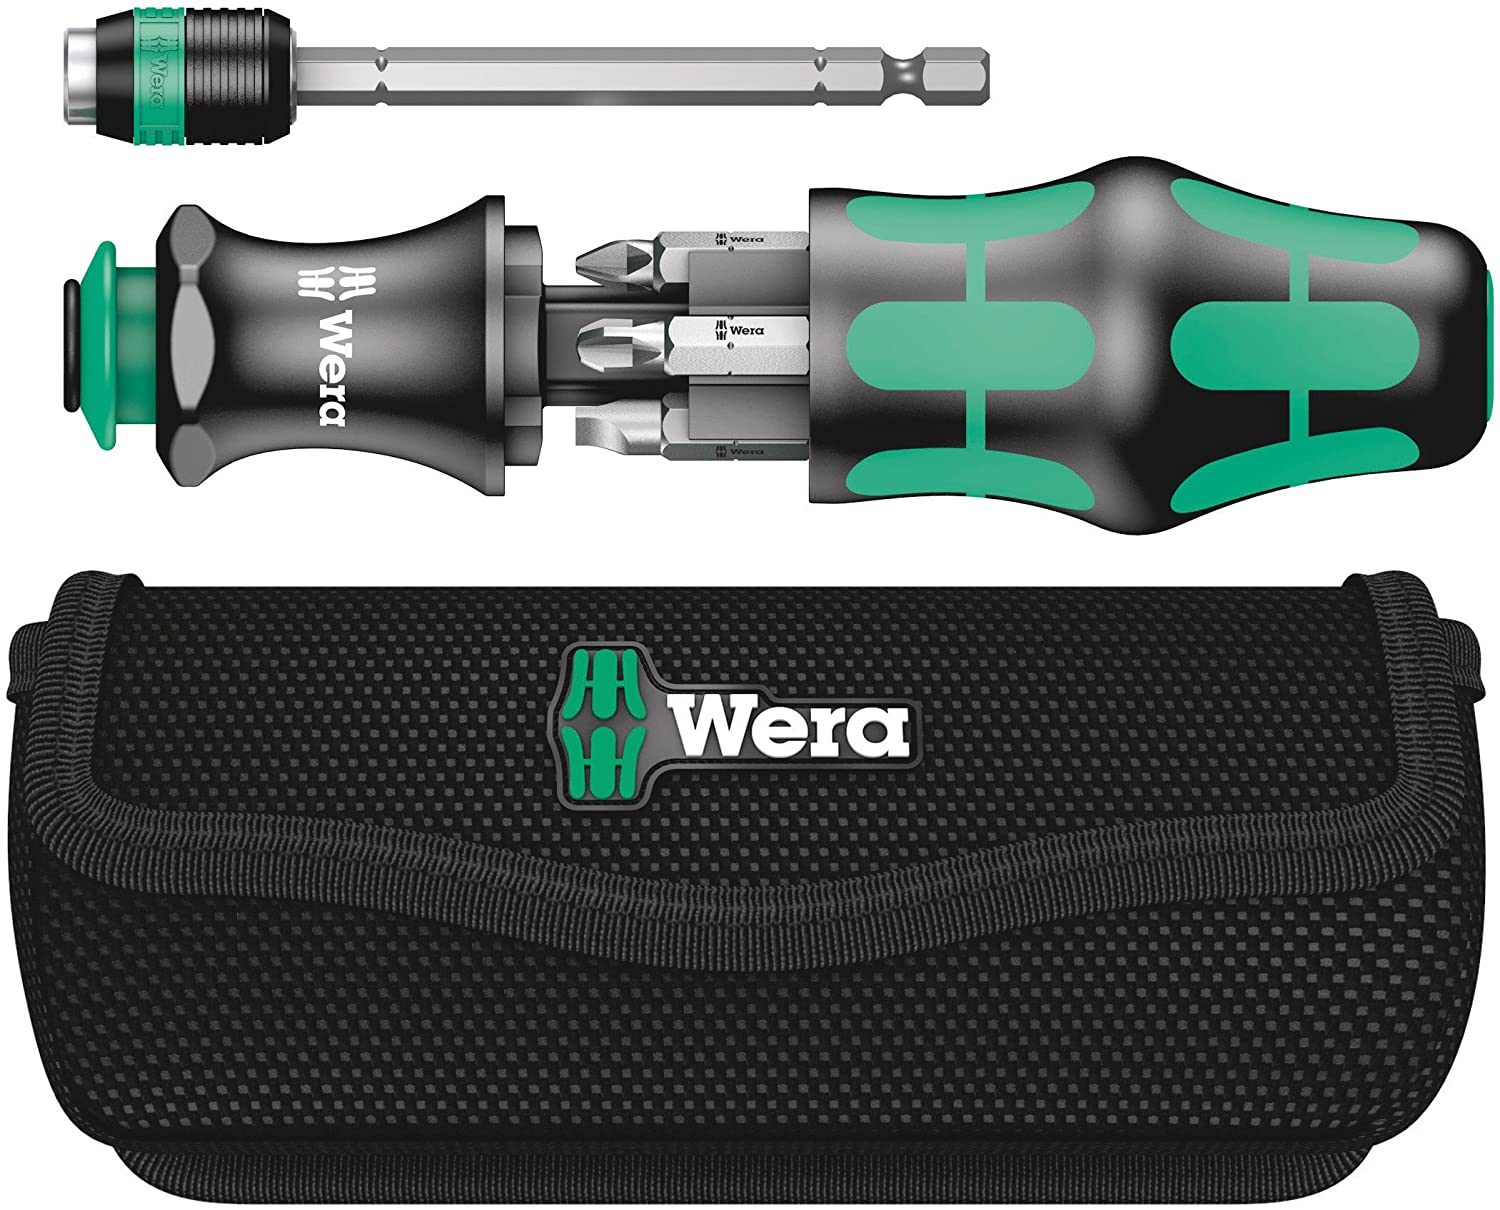 Wera 05051024001 Kraftform Kompakt 25 Slotted and Phillips BithoCSLDing Screwdriver with Bayonet Blade and Pouch Wera Tools